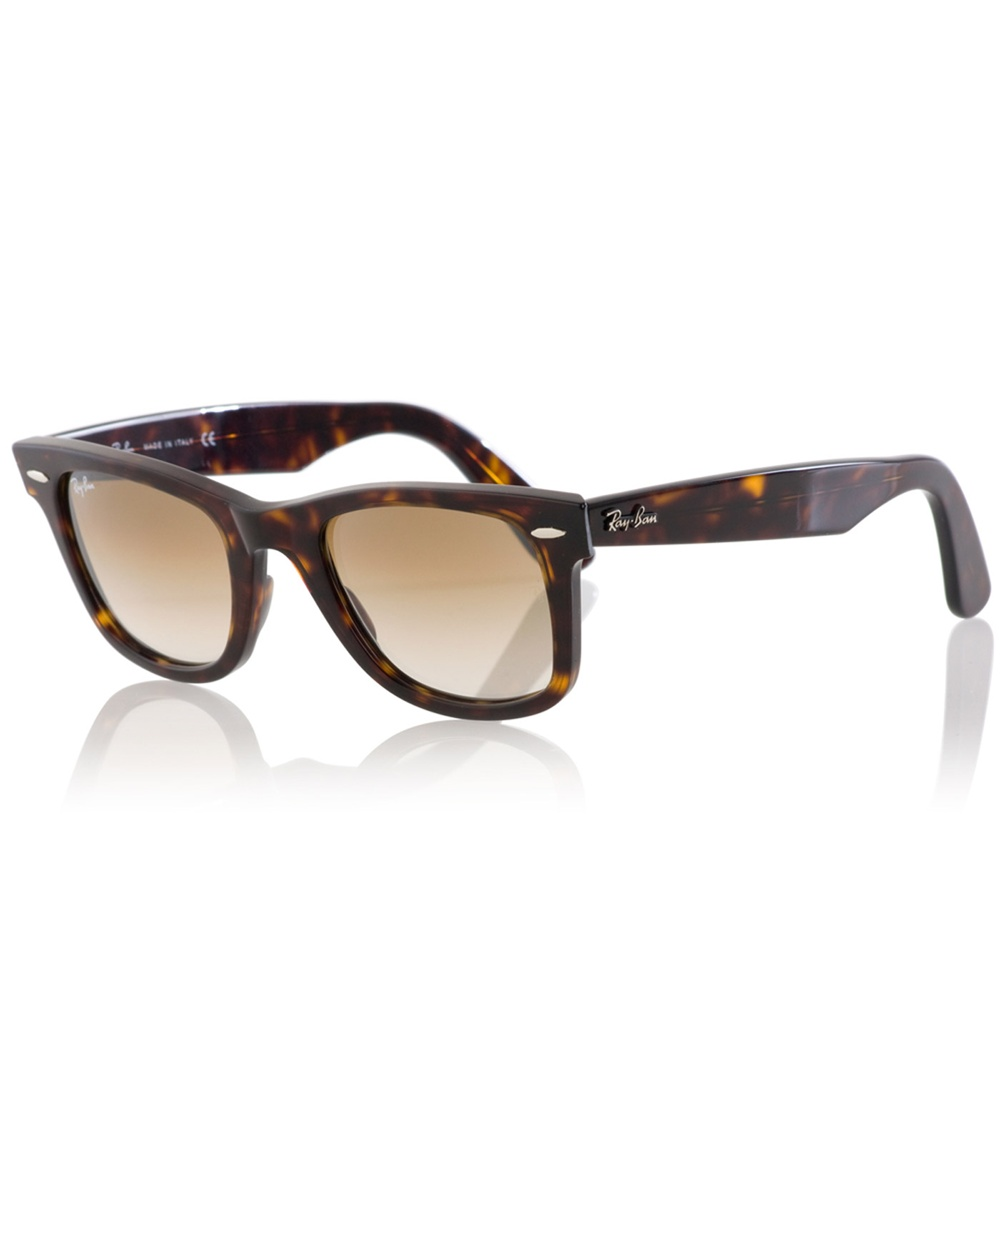 brown wayfarer sunglasses jb93  Gallery Previously sold at: FarFetch 路 Men's Wayfarer Sunglasses